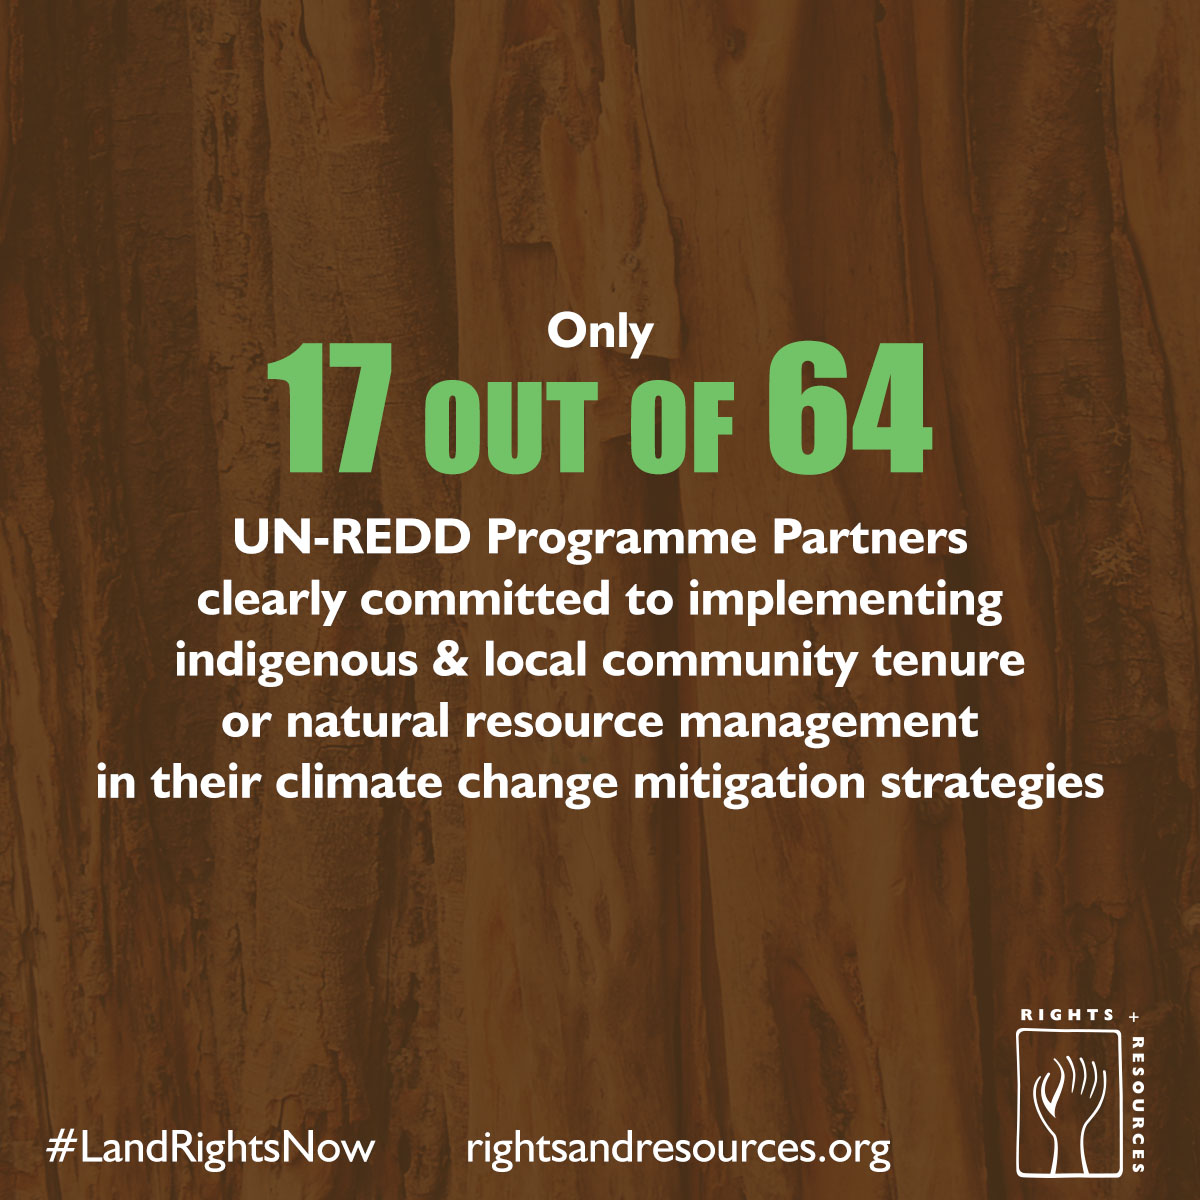 RRI Analysis | Indigenous Peoples & Local Community Tenure in the INDCs: Status and Recommendations | 17 out of 64 UN-REDD Programme Partners clearly committed to community tenure rights as climate change mitigation strategy